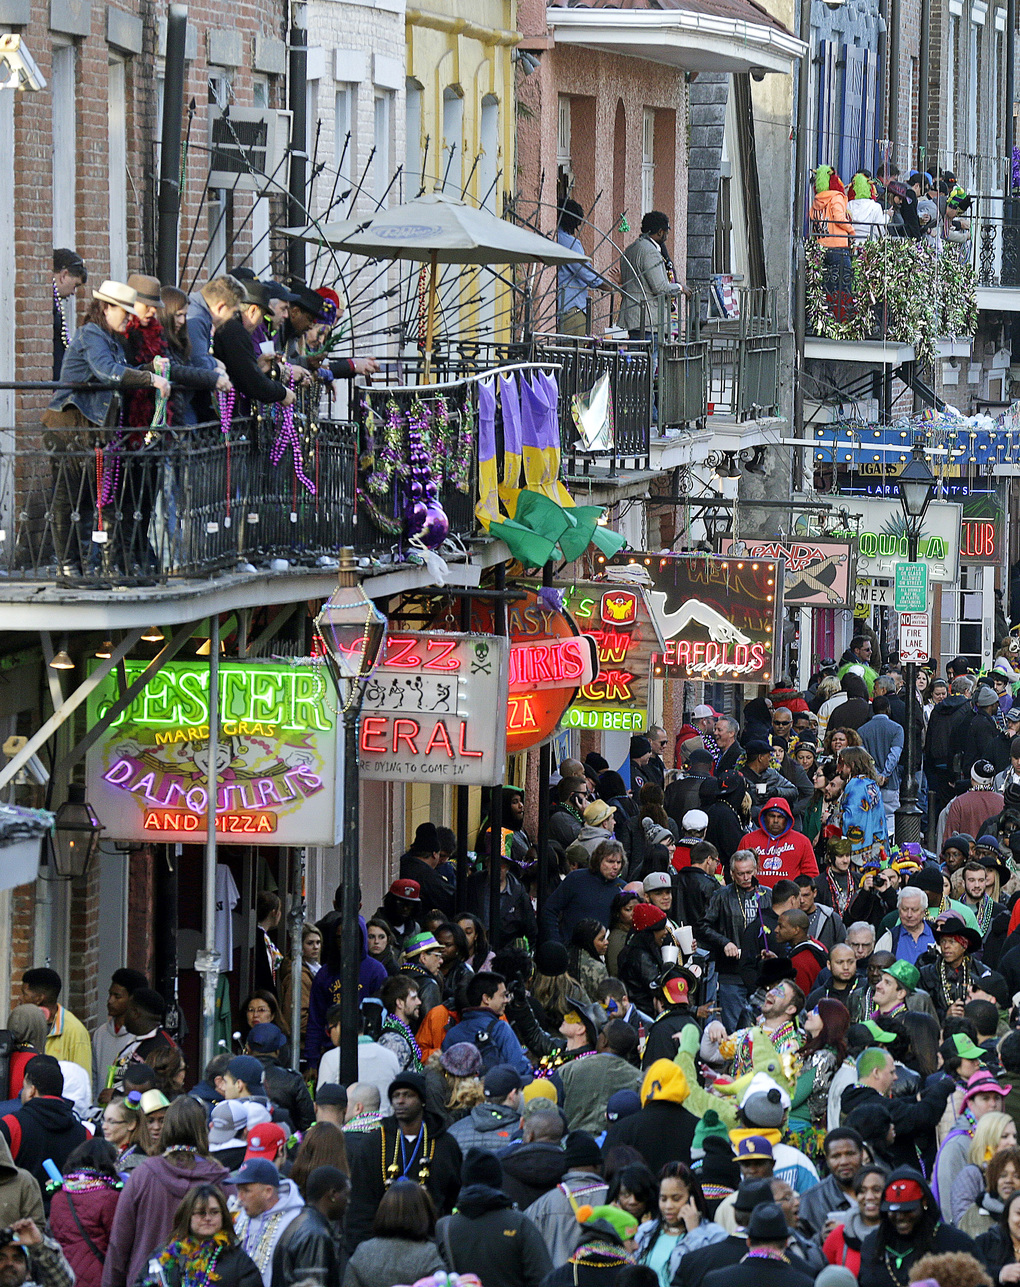 FILE – In this Feb. 17, 2015 file photo, revelers pack Bourbon Street on Mardi Gras day in the French Quarter in New Orleans.  New Orlean's tourism industry has rebuilt, rebounded and modernized in the 10 years since Katrina. (AP Photo/Gerald Herbert, File)